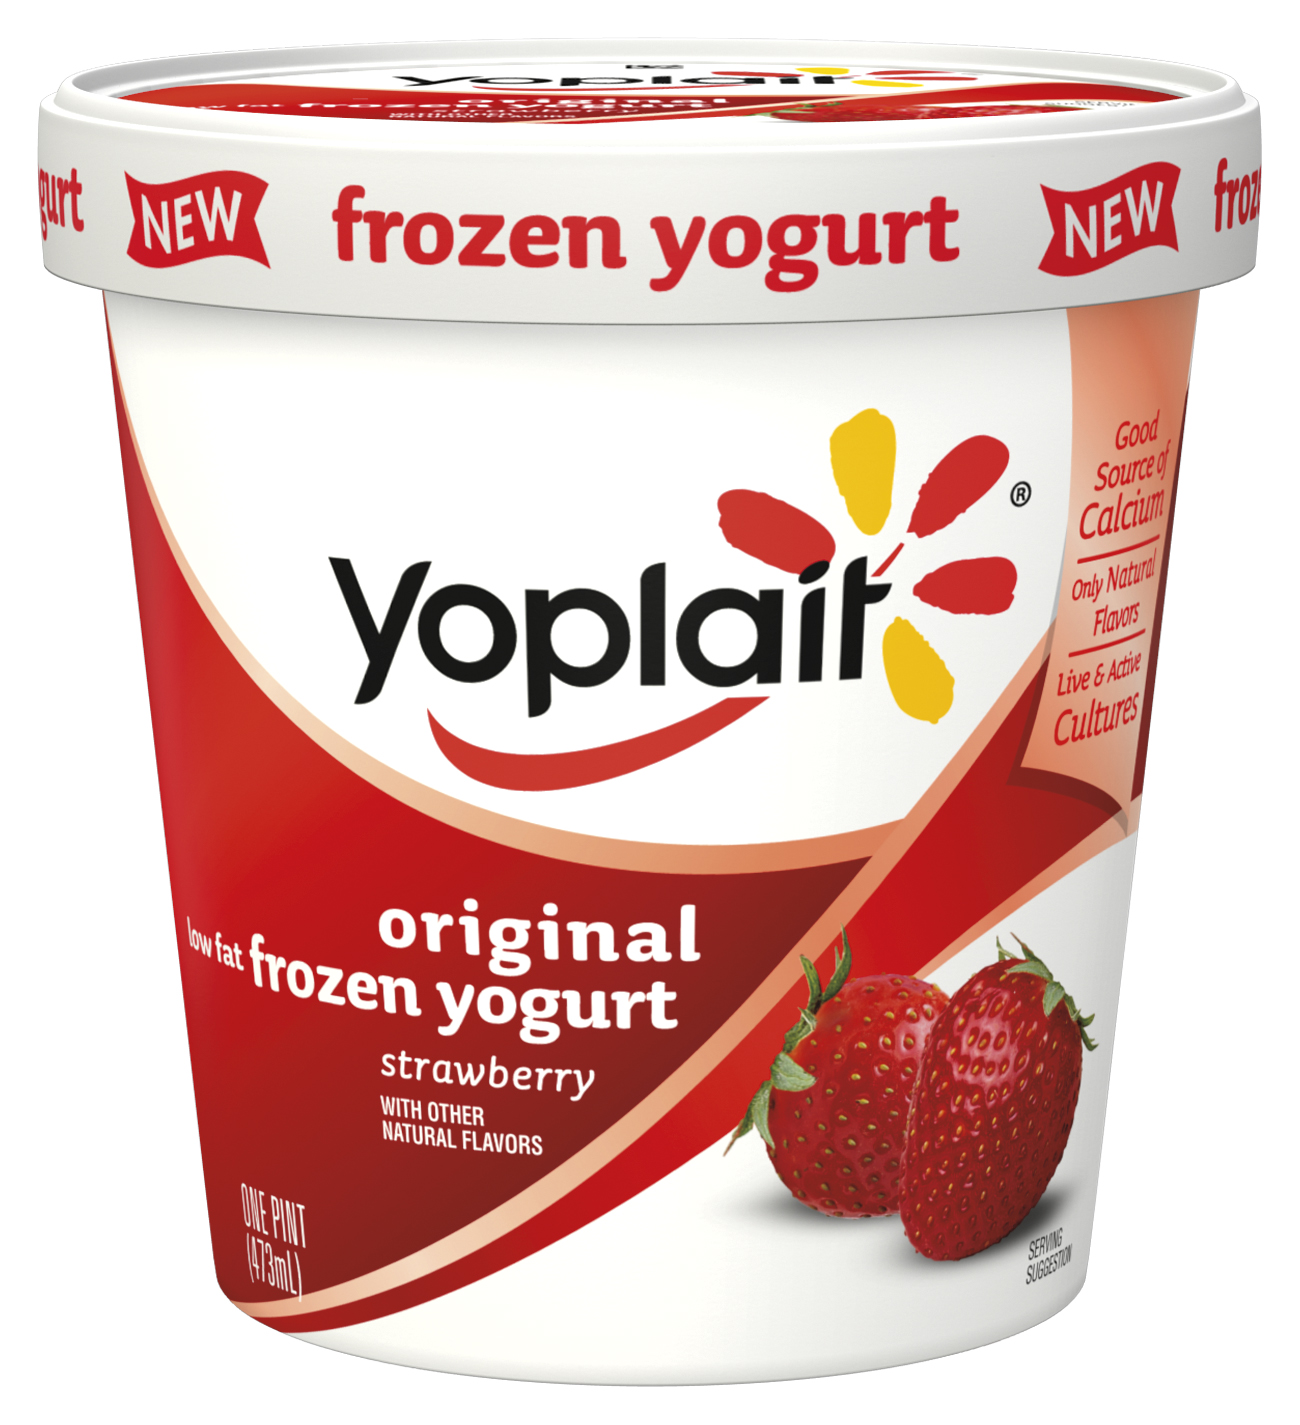 Sojourner Marable Grimmett: Attention Yogurt Yoplait ...